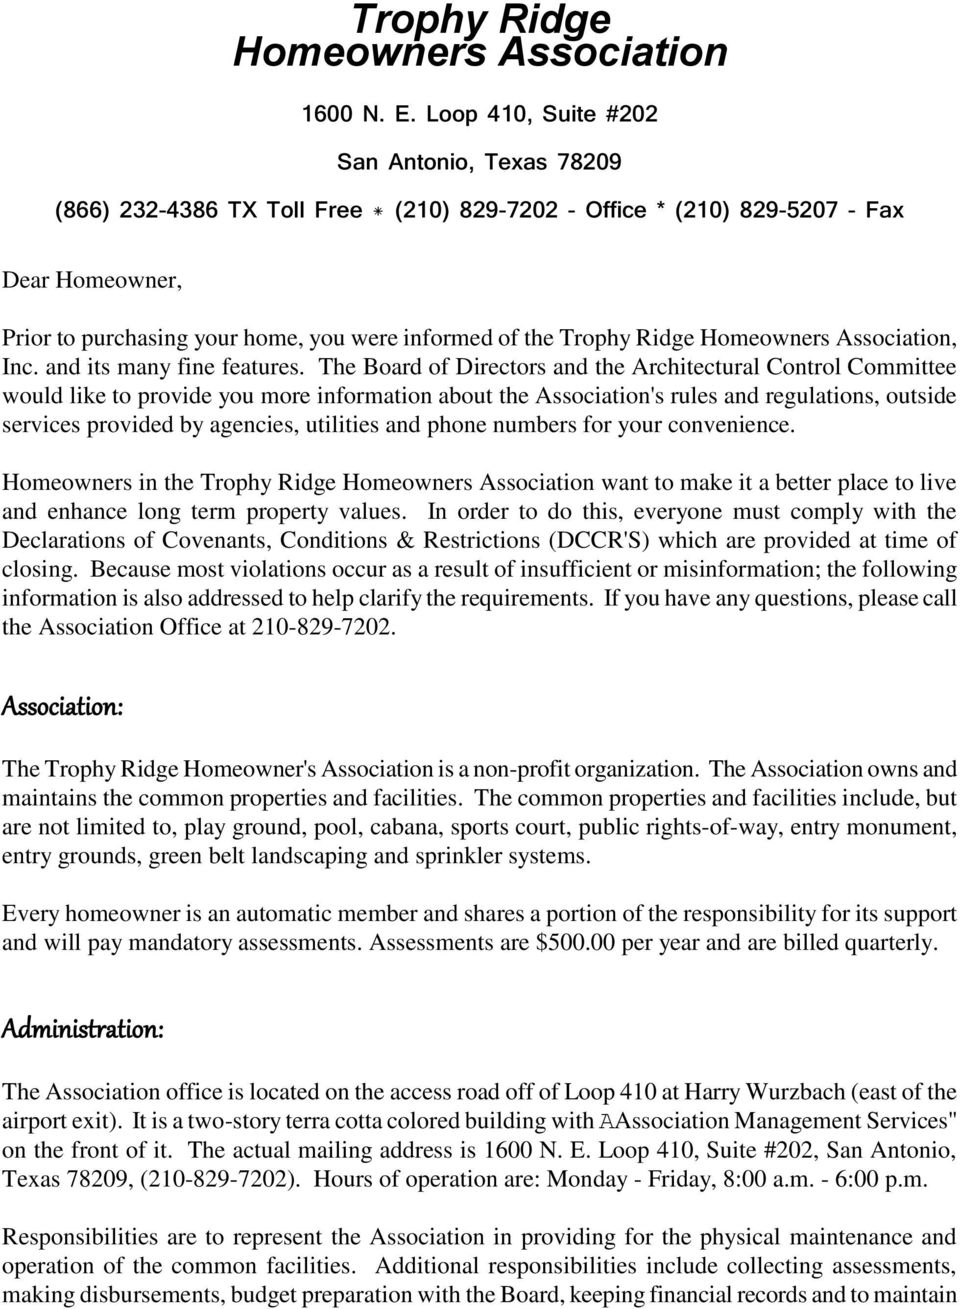 Trophy Ridge Homeowners Association, Inc. and its many fine features.